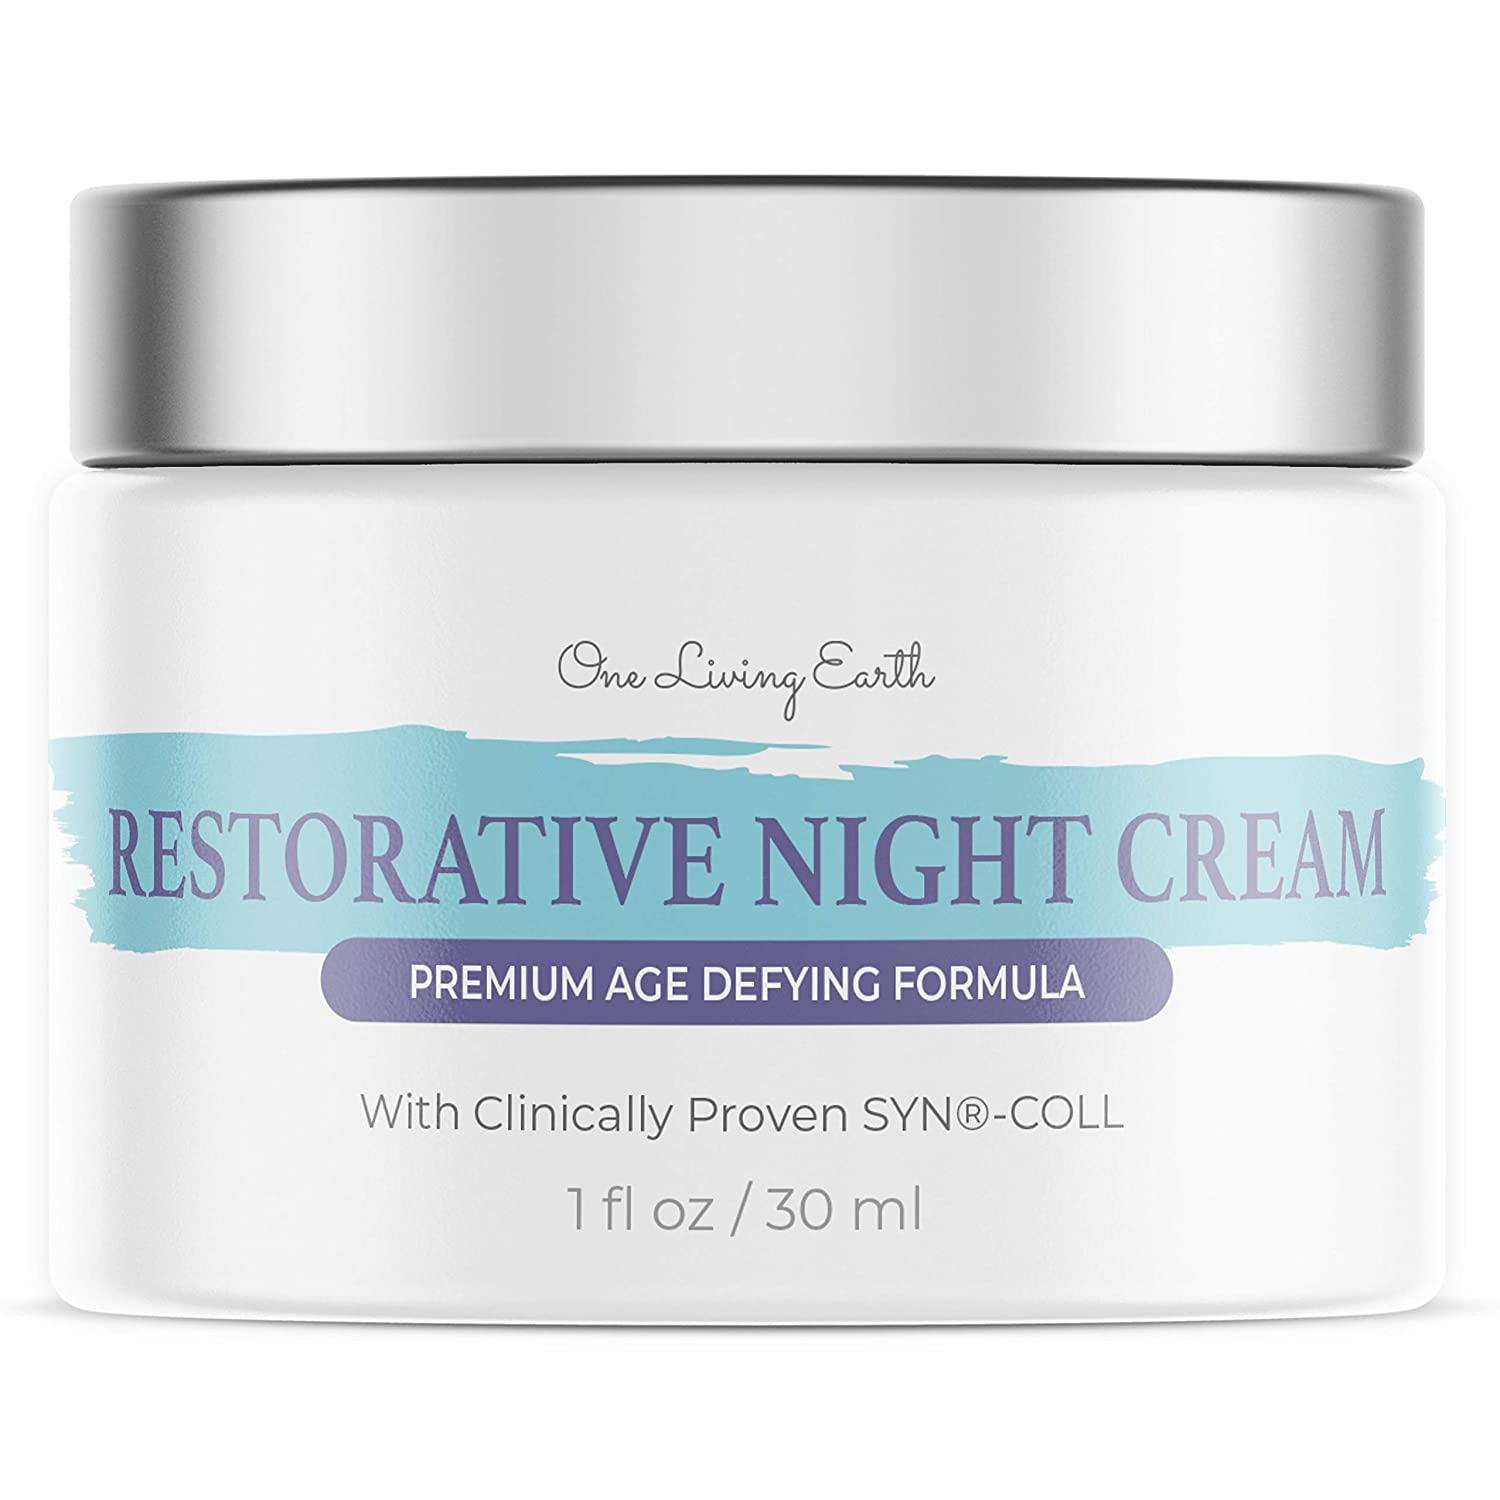 One Living Earth Night Cream for Face - Anti Aging Face Moisturizer for Women and Men - Skin Renewing Wrinkle Cream - Cleanse, Moisturize, and Protect Your Skin